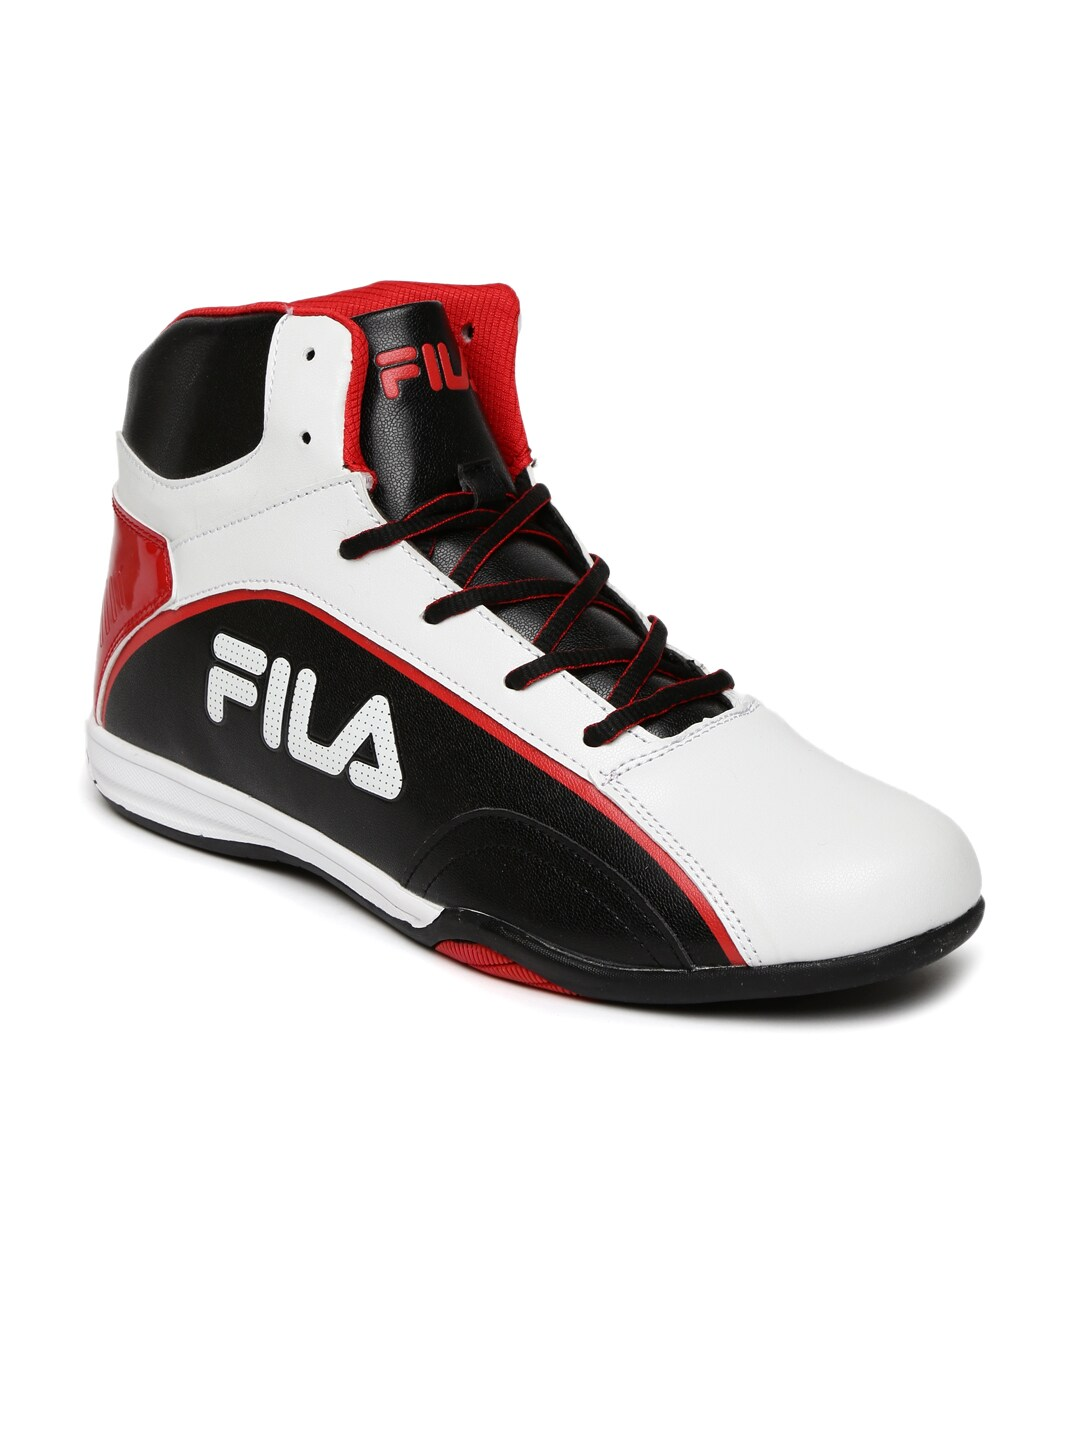 Find Hot Shoes Cheap Online